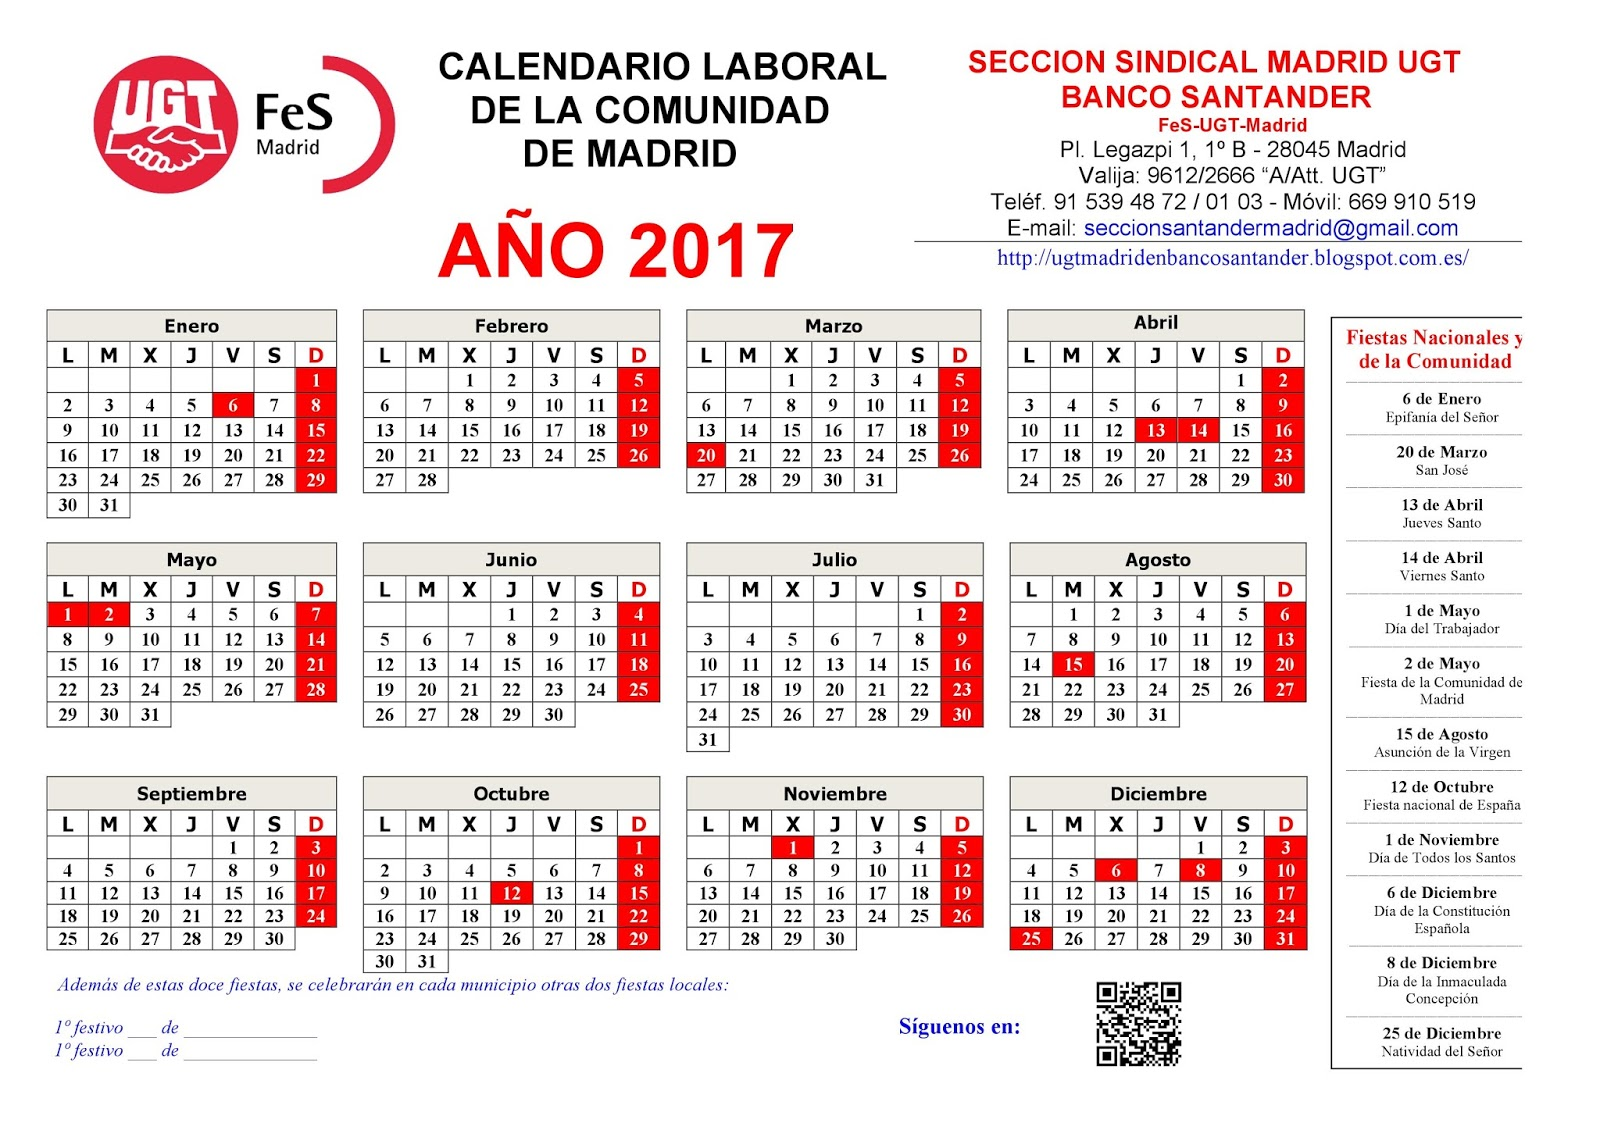 Calendario Laboral Comunidad De Madrid.Seccion Sindical De Ugt Madrid En Banco Santander El Sindi